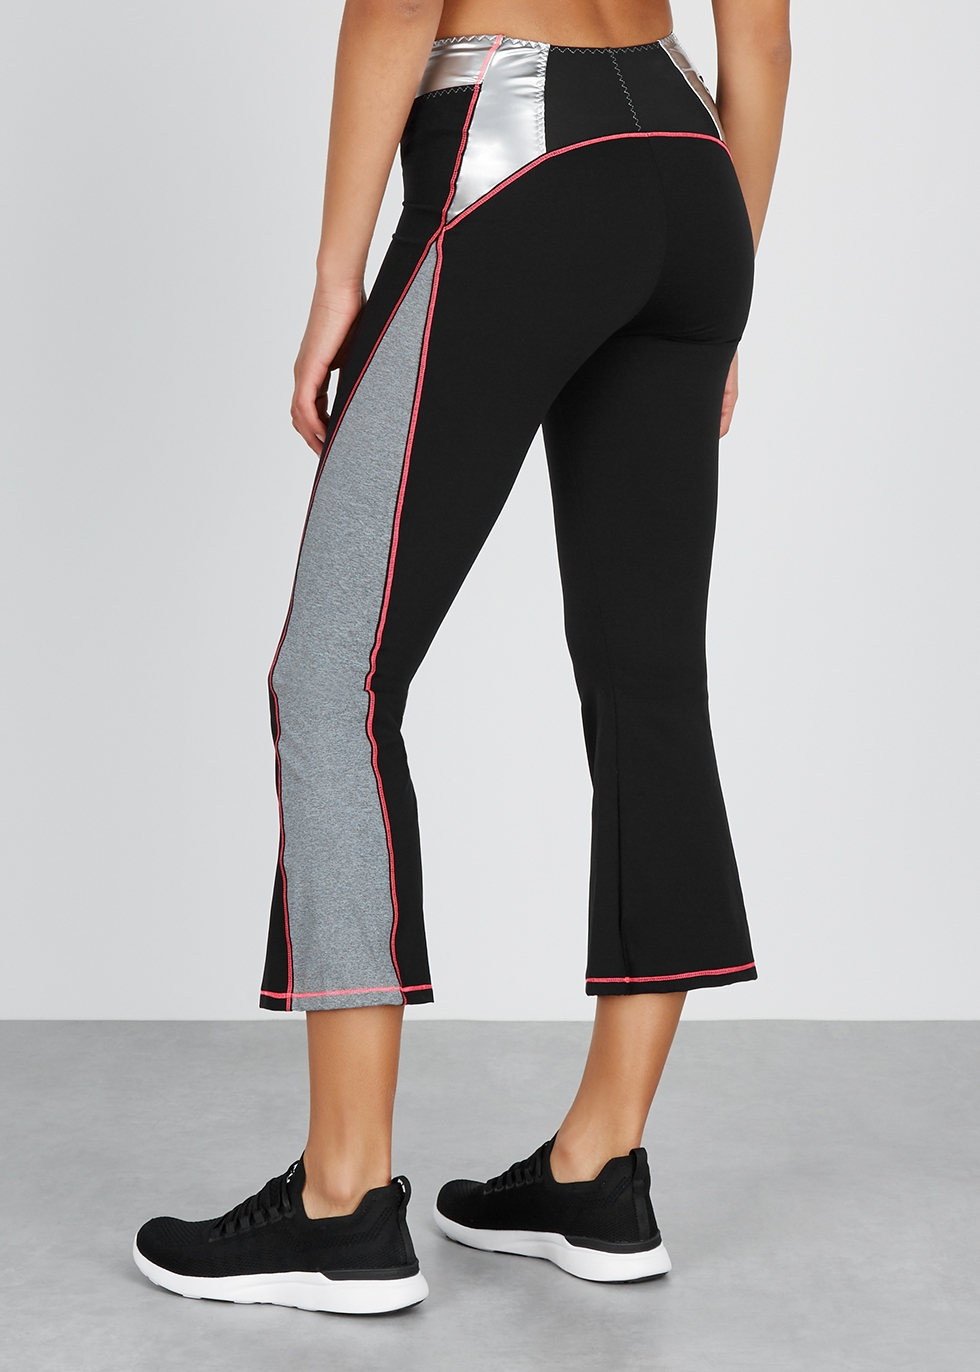 Venus panelled stretch-jersey leggings - Sàpopa